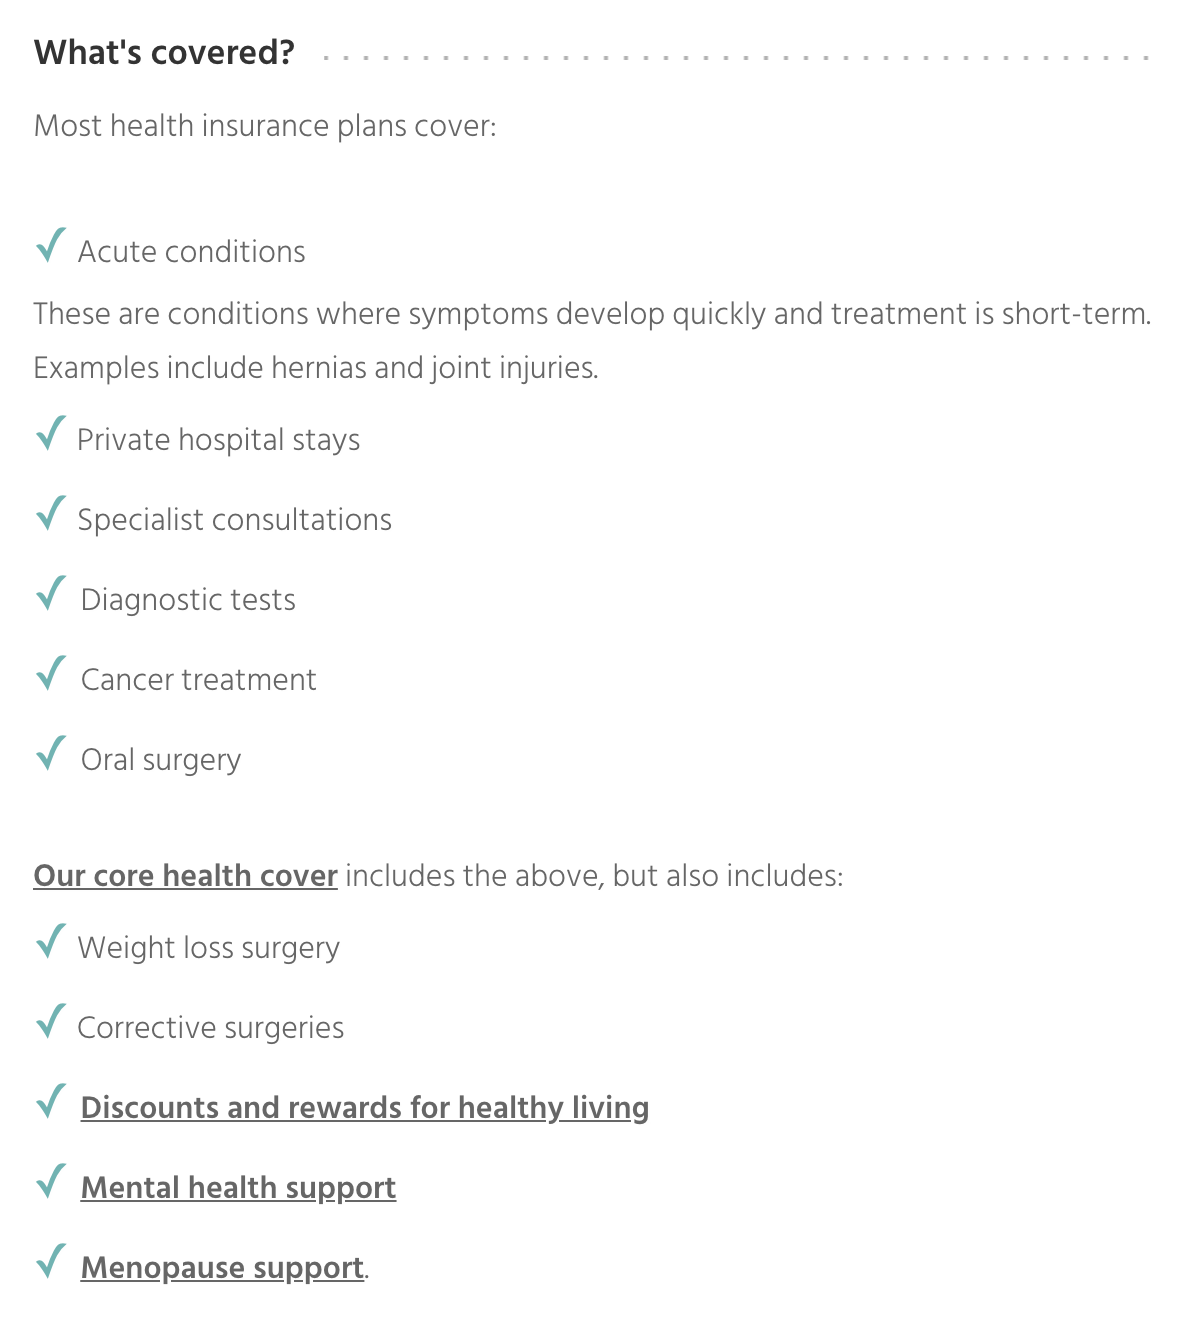 What's covered by most health insurance